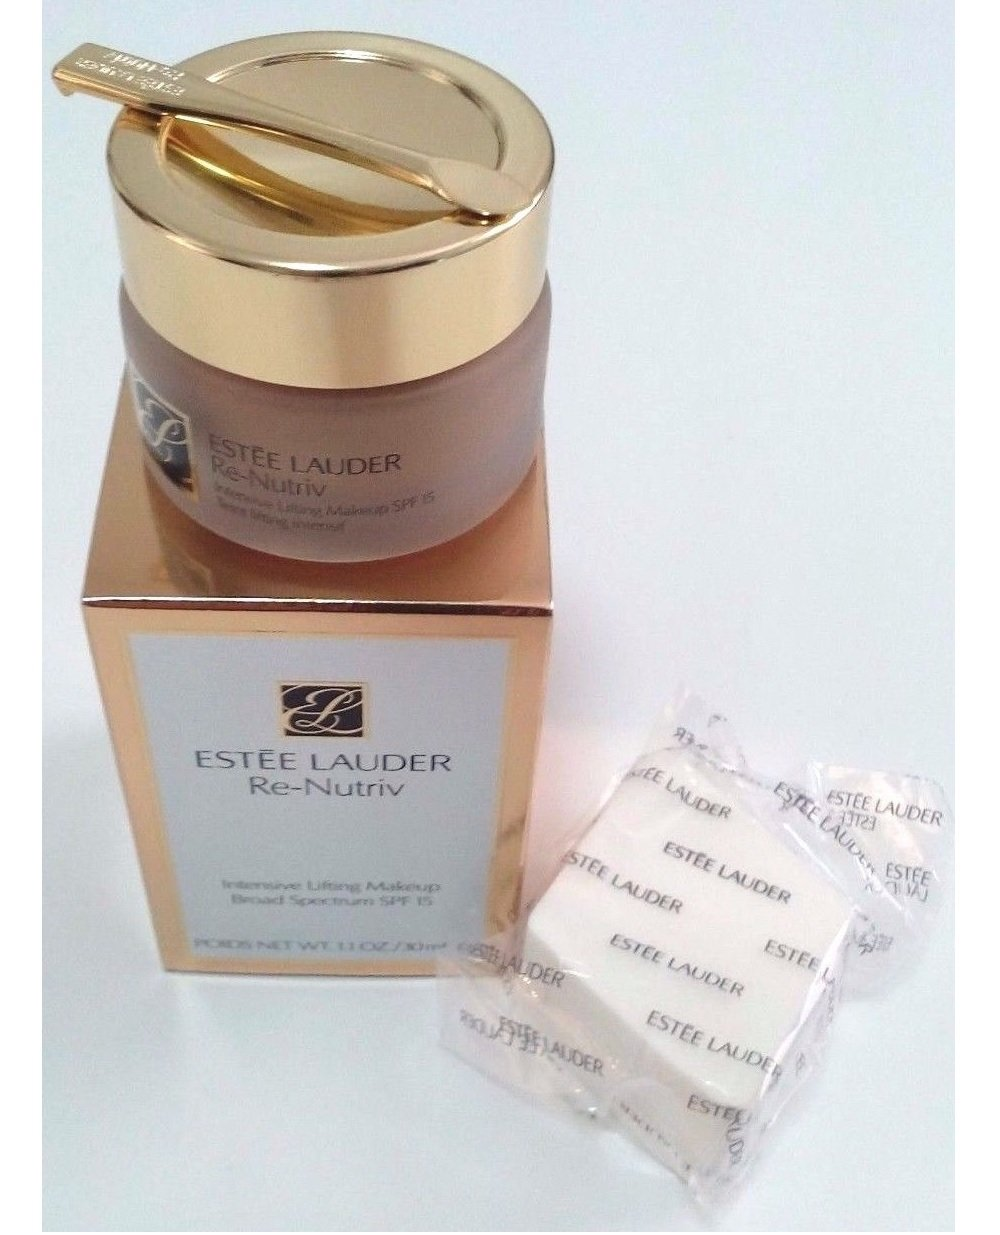 Estee Lauder Re-nutriv Intensive Lifting Makeup Broad Spectrum 15 Pale Almond 02